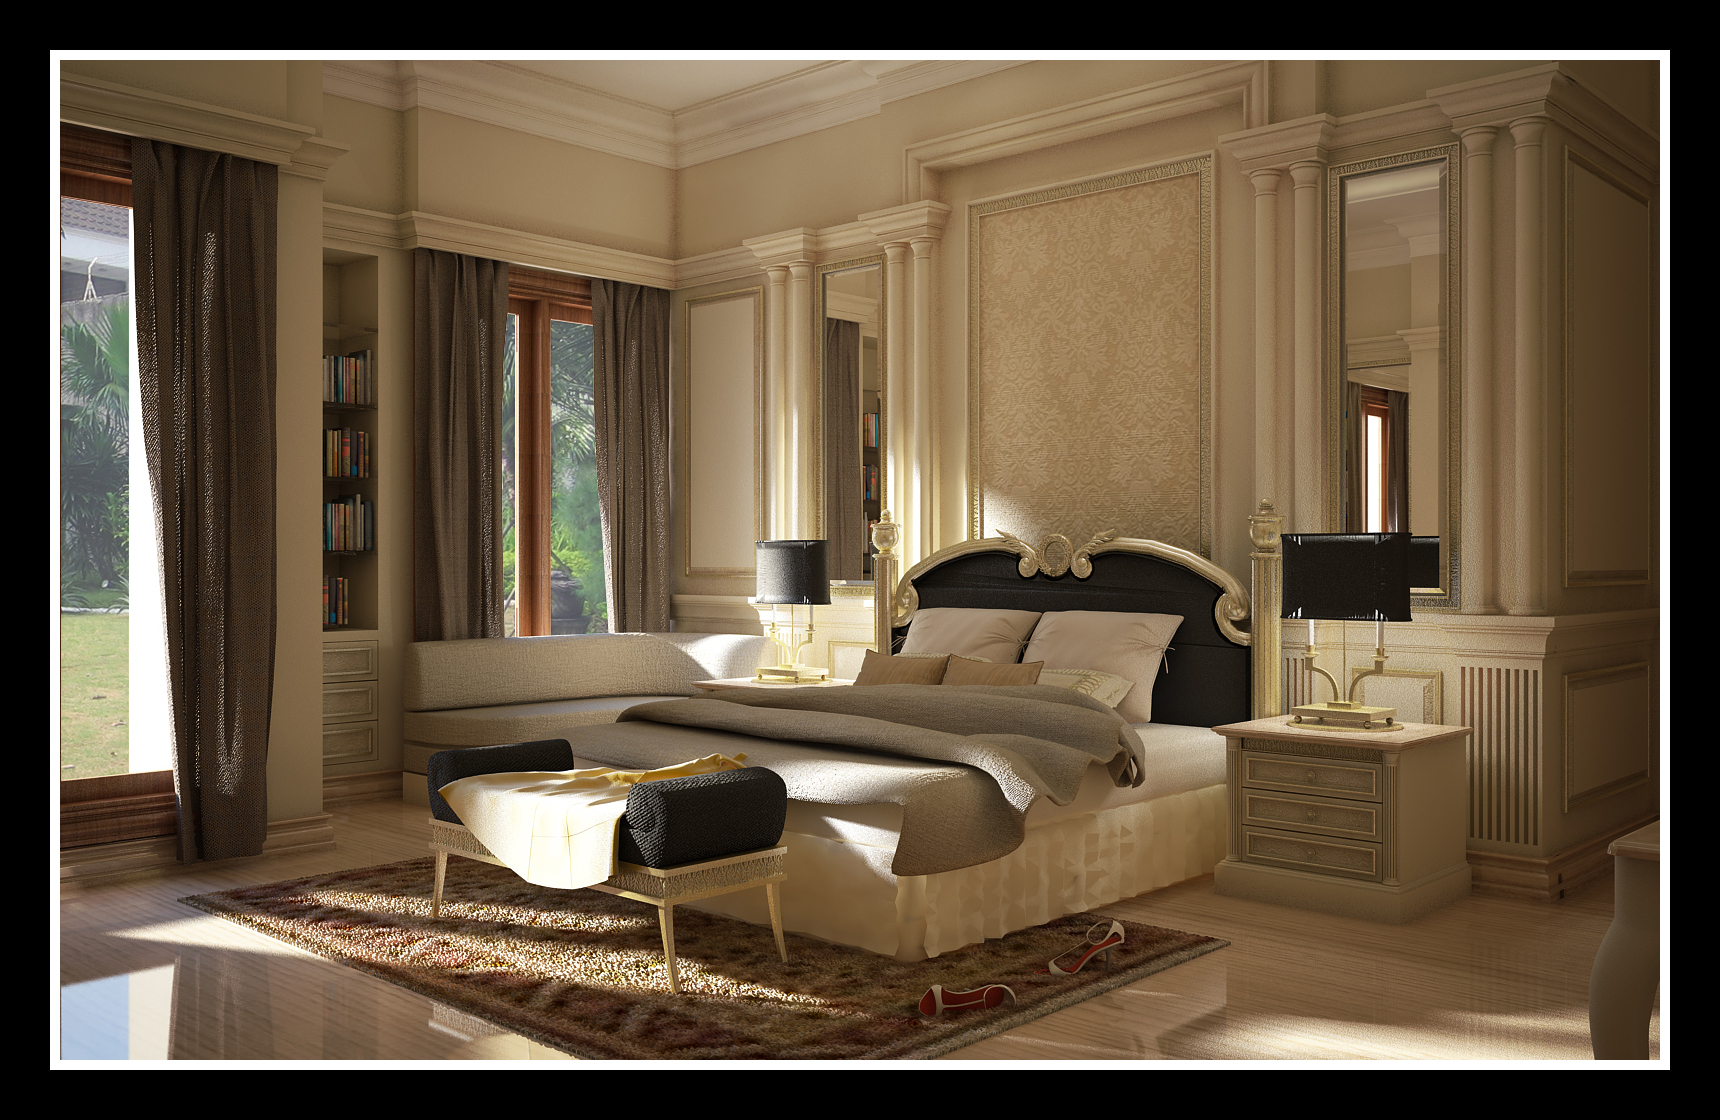 Classic interior design for Luxurious bedroom interior design ideas